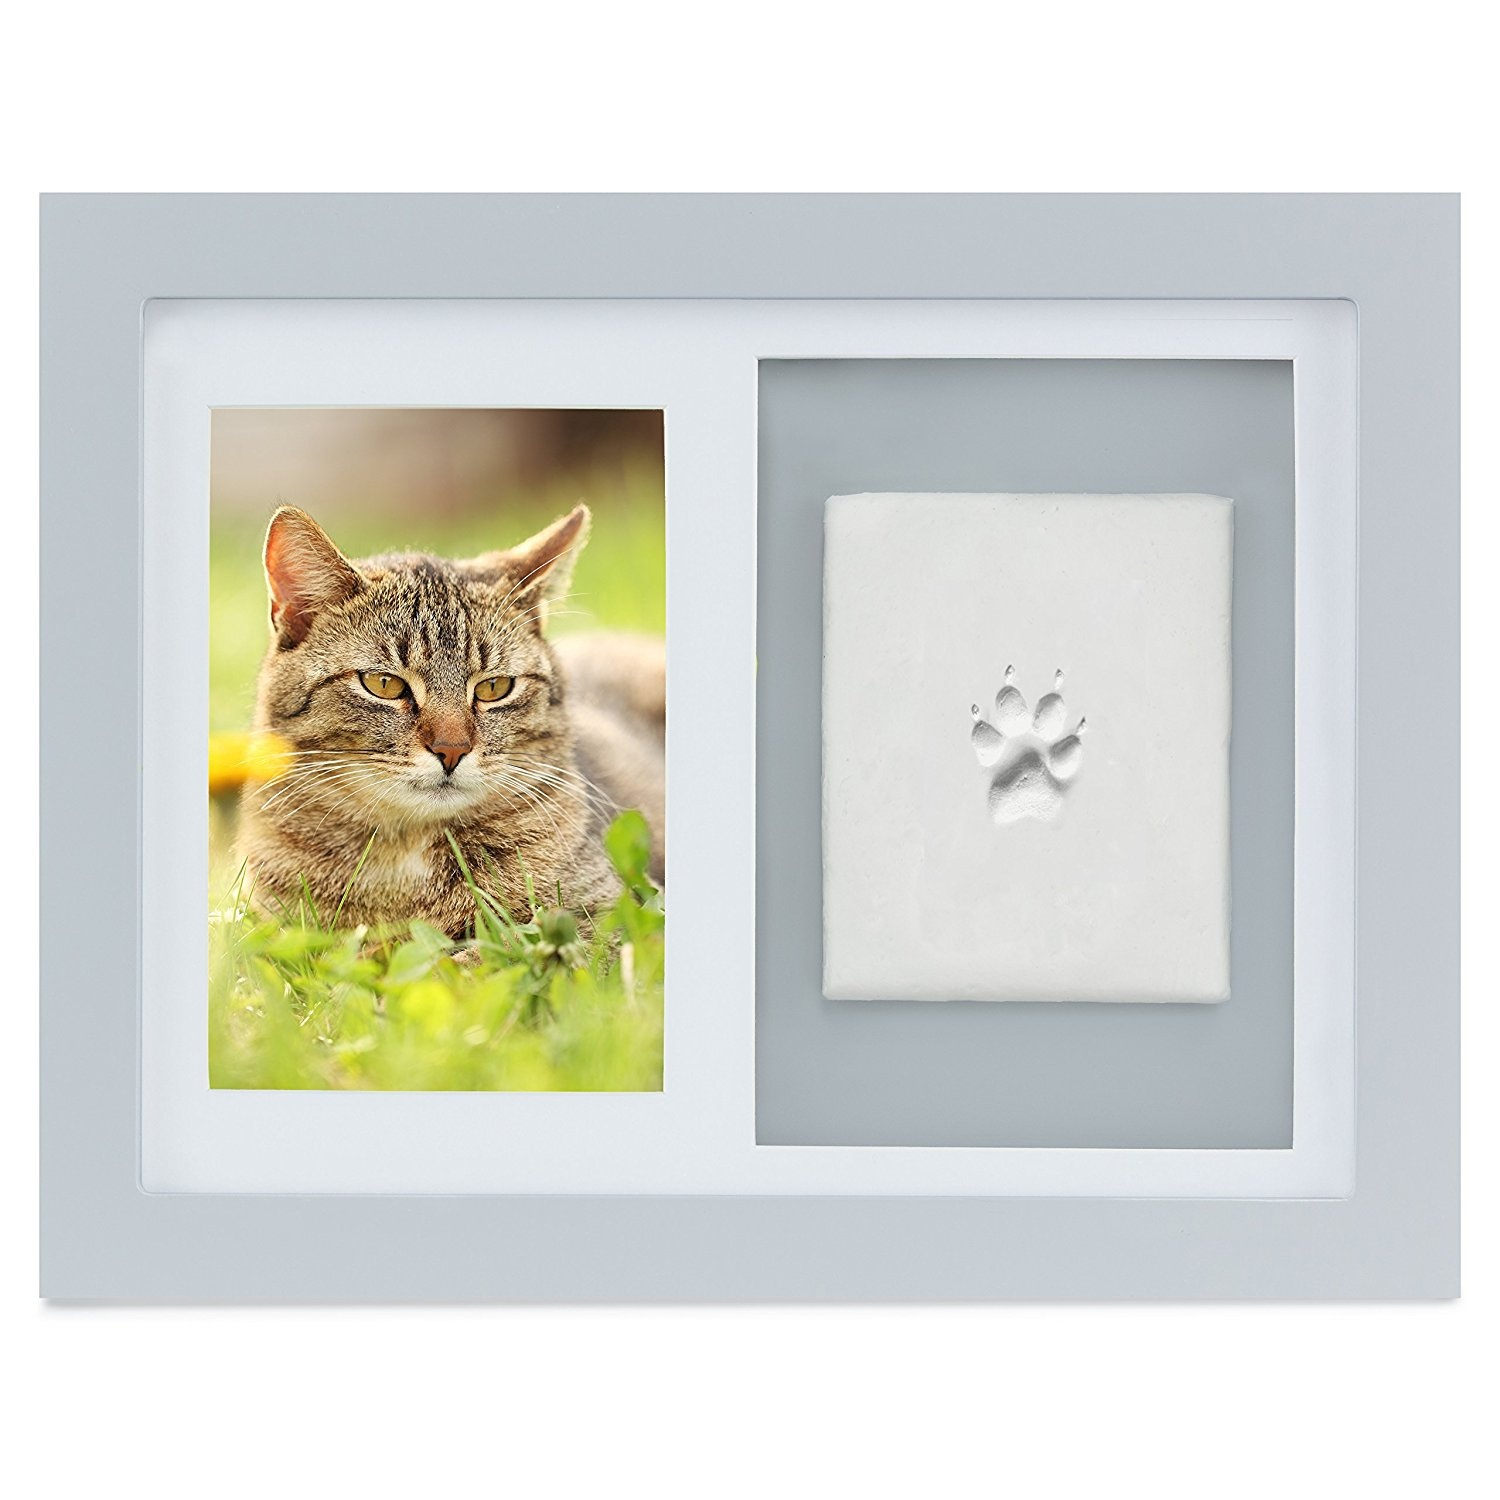 Cat Photo Frame Homeware: Buy Online from Fishpond.co.nz